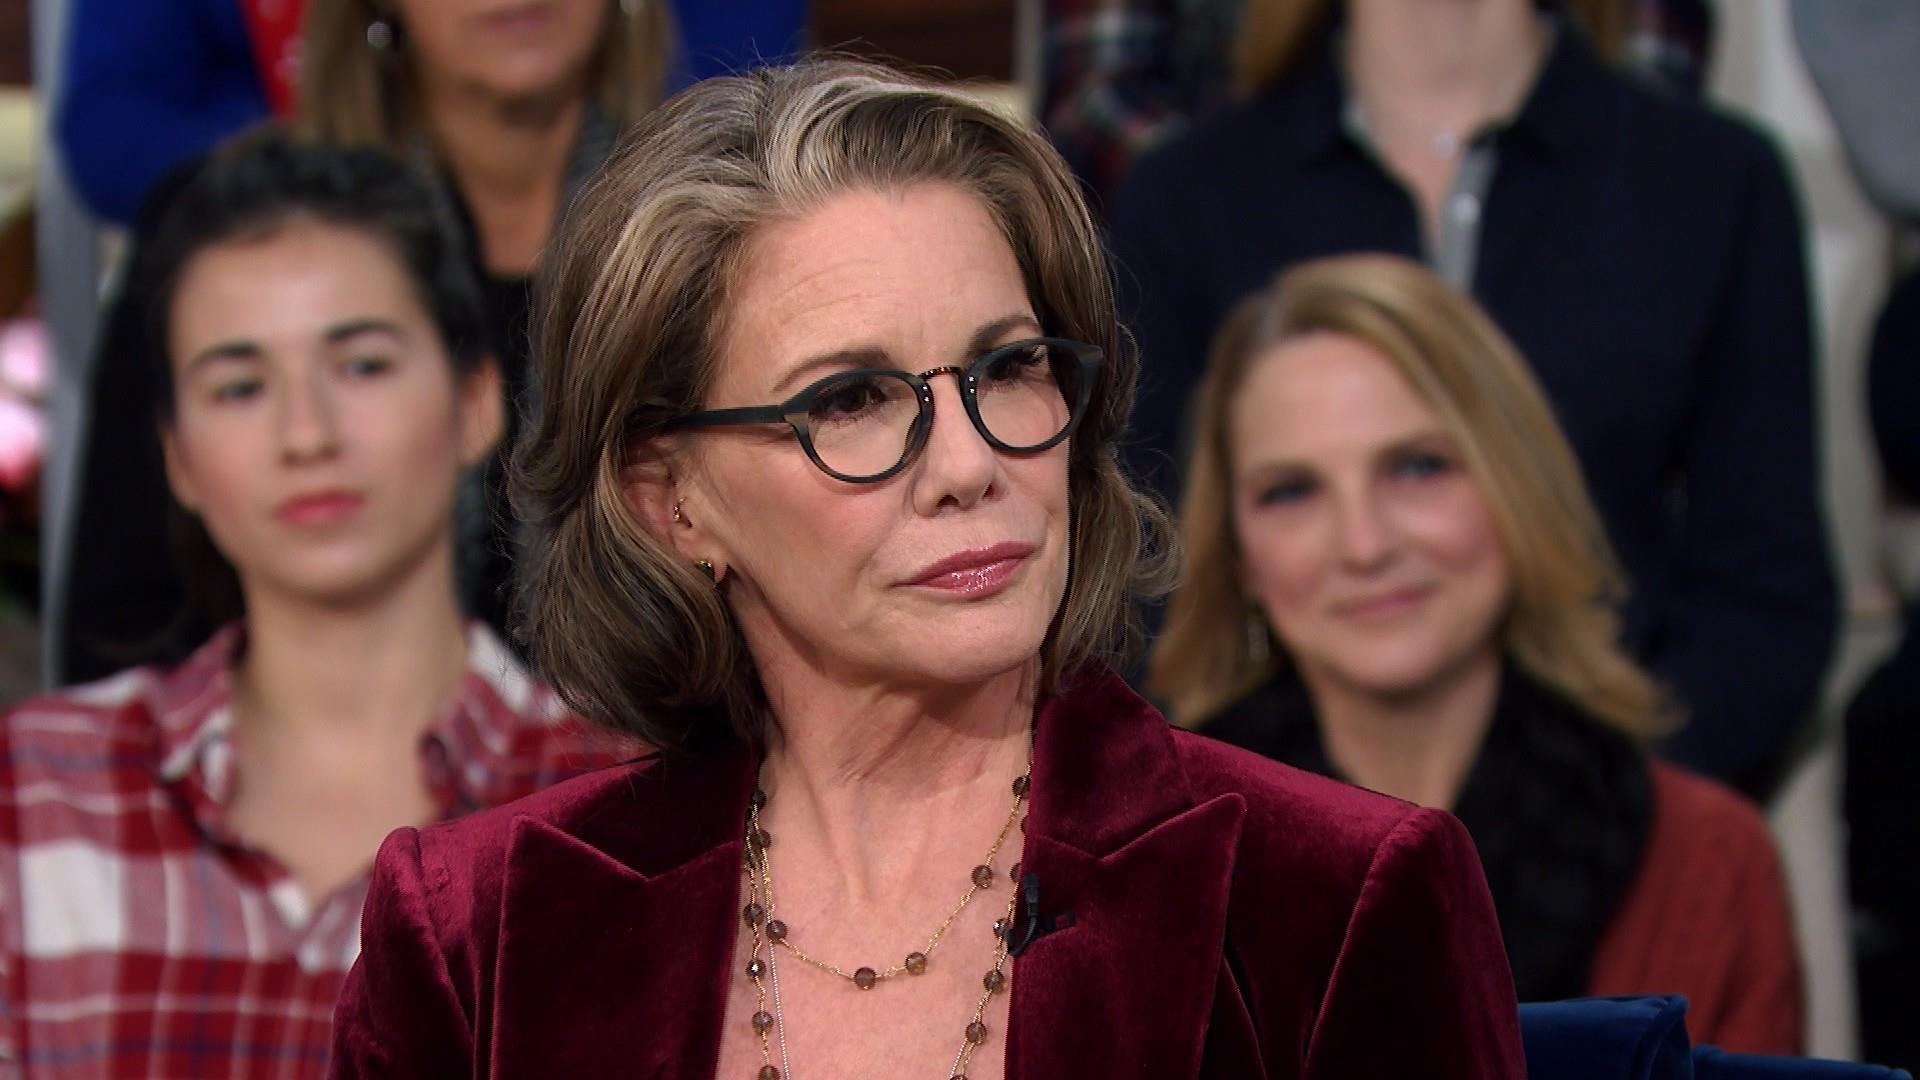 Melissa Gilbert in her old age wearing spectacles